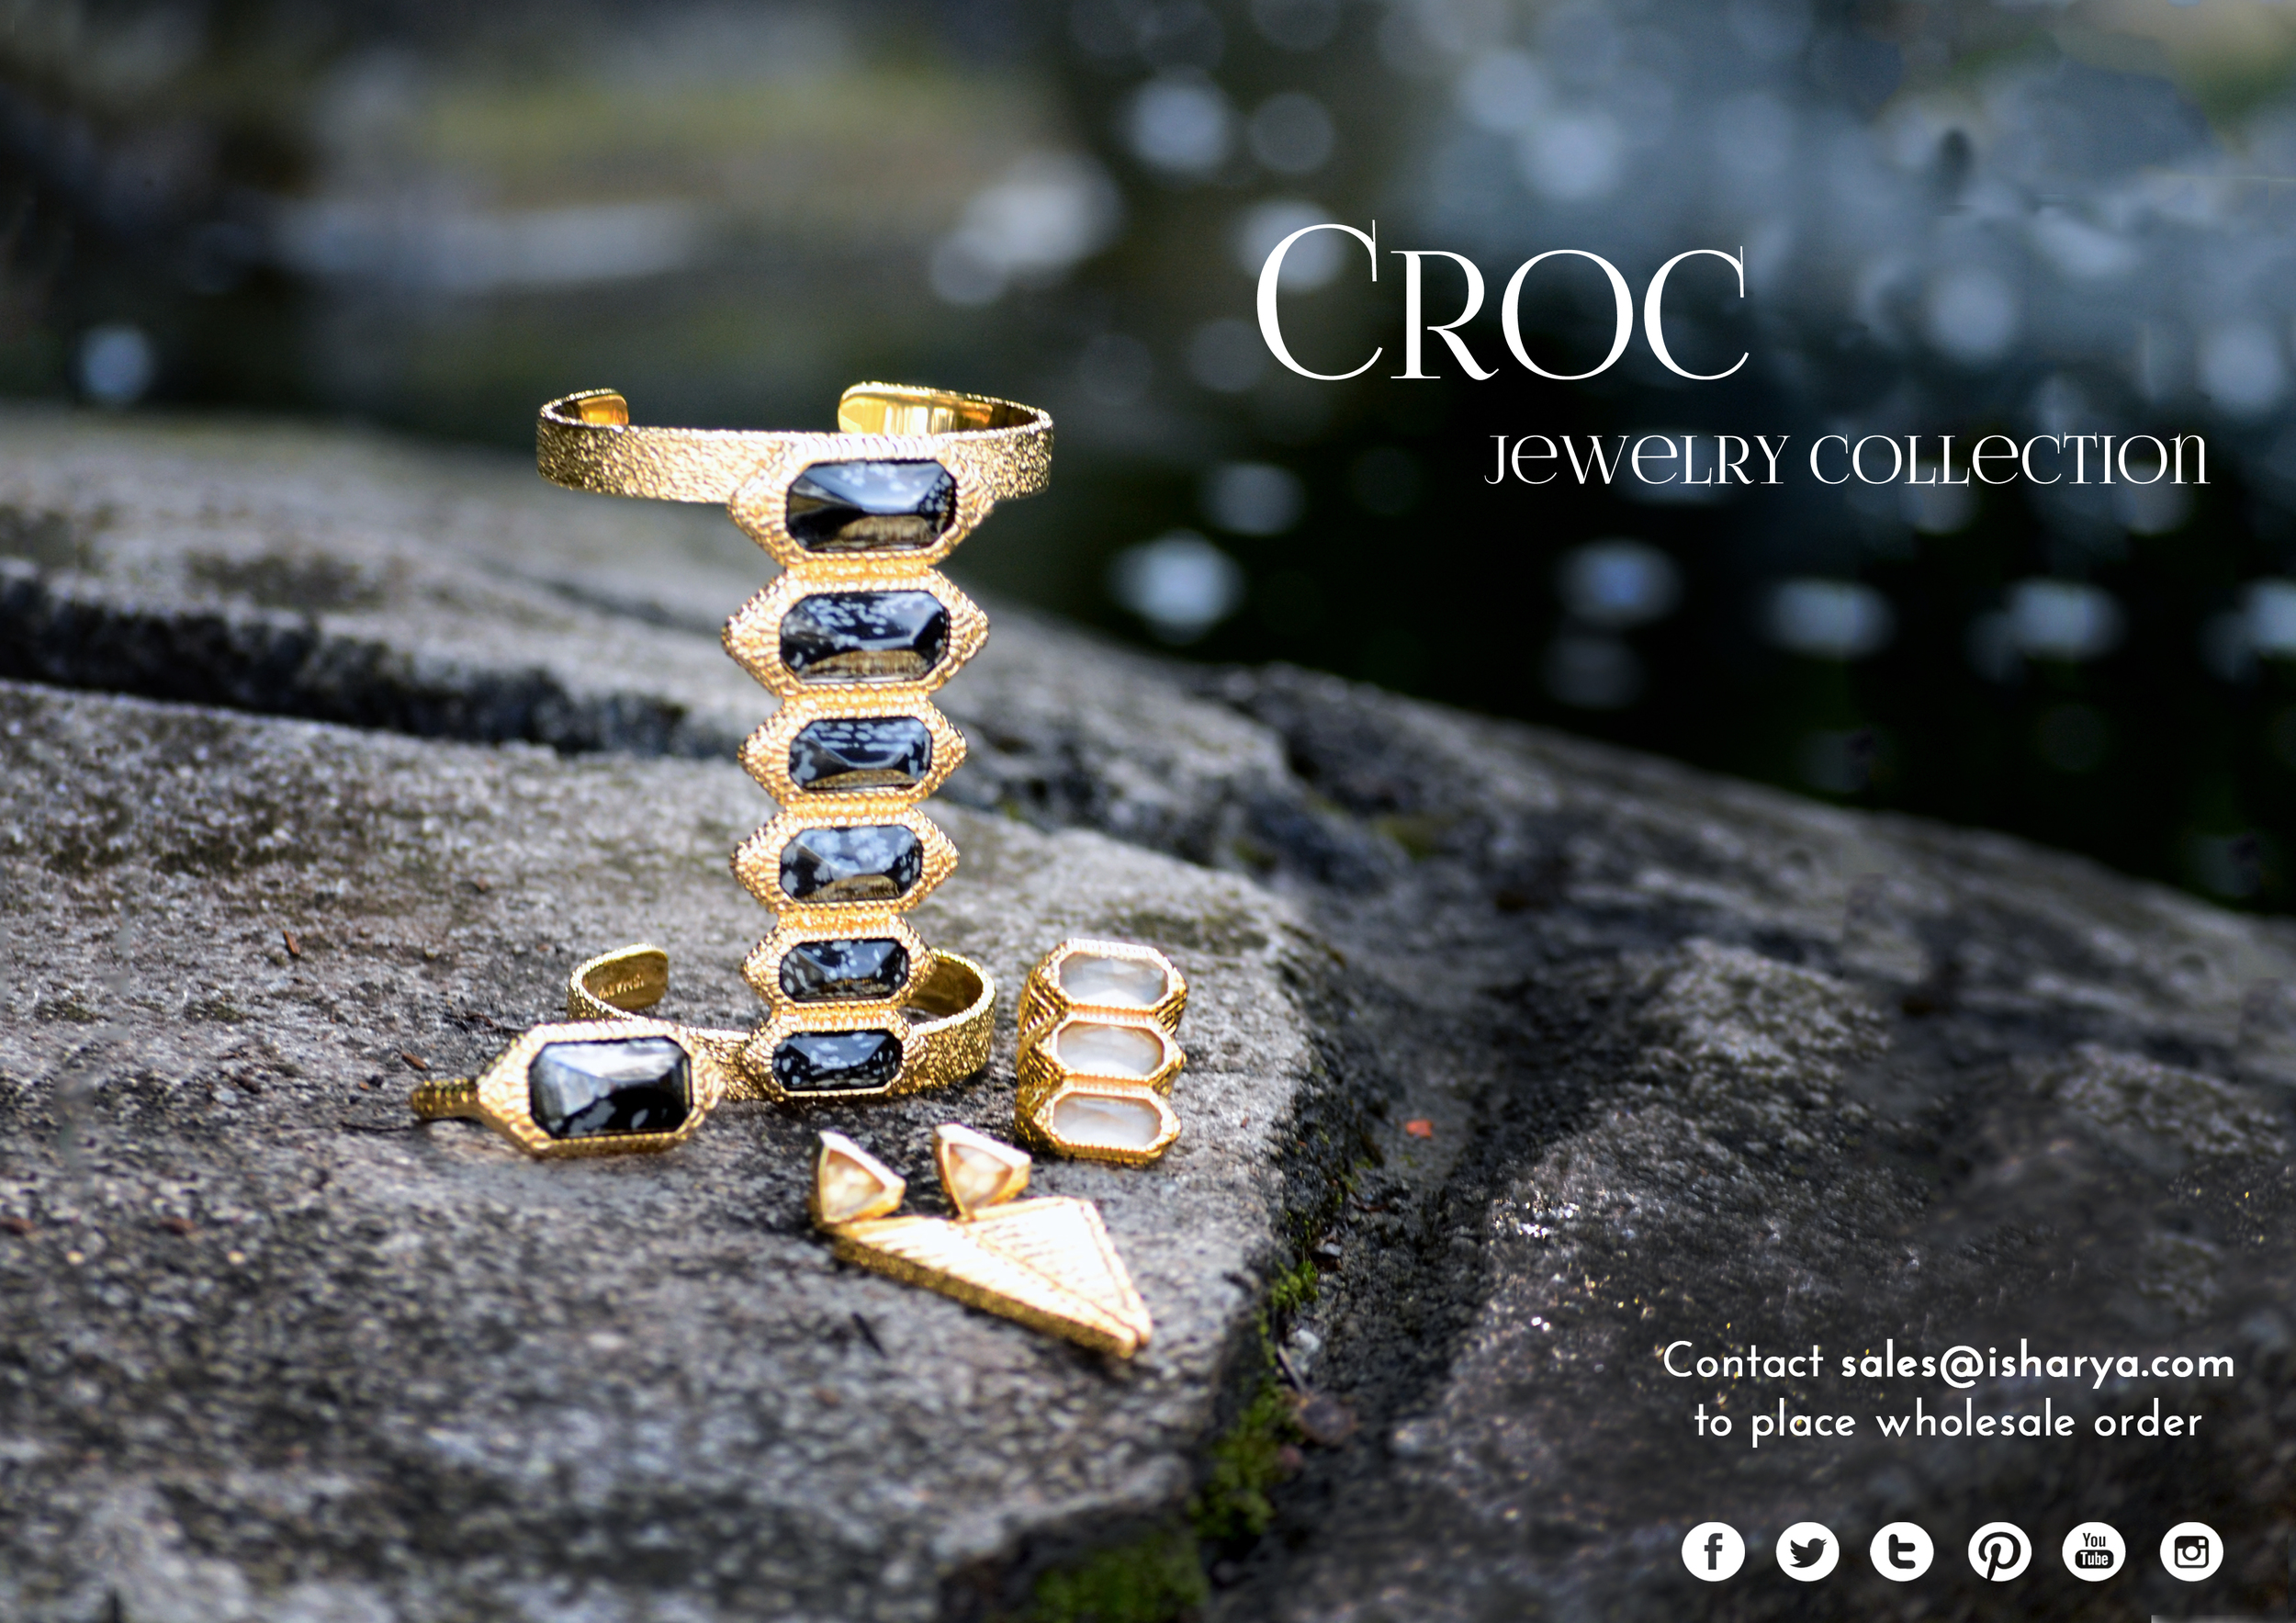 25_a_Croc_Lookbook_by_ISHARYA_Jewelry_Wholesalel.jpg